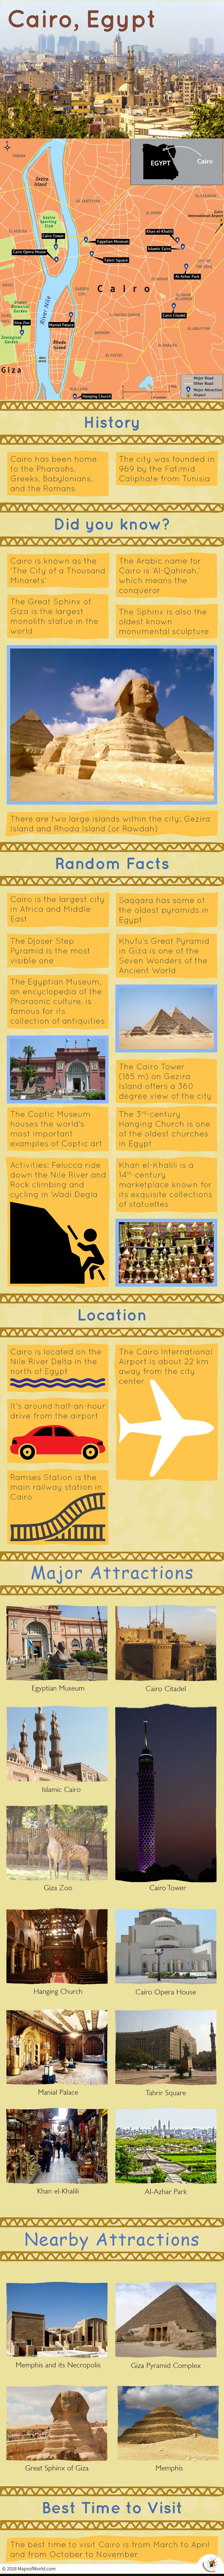 Infographic Depicting Cairo Tourist Attractions